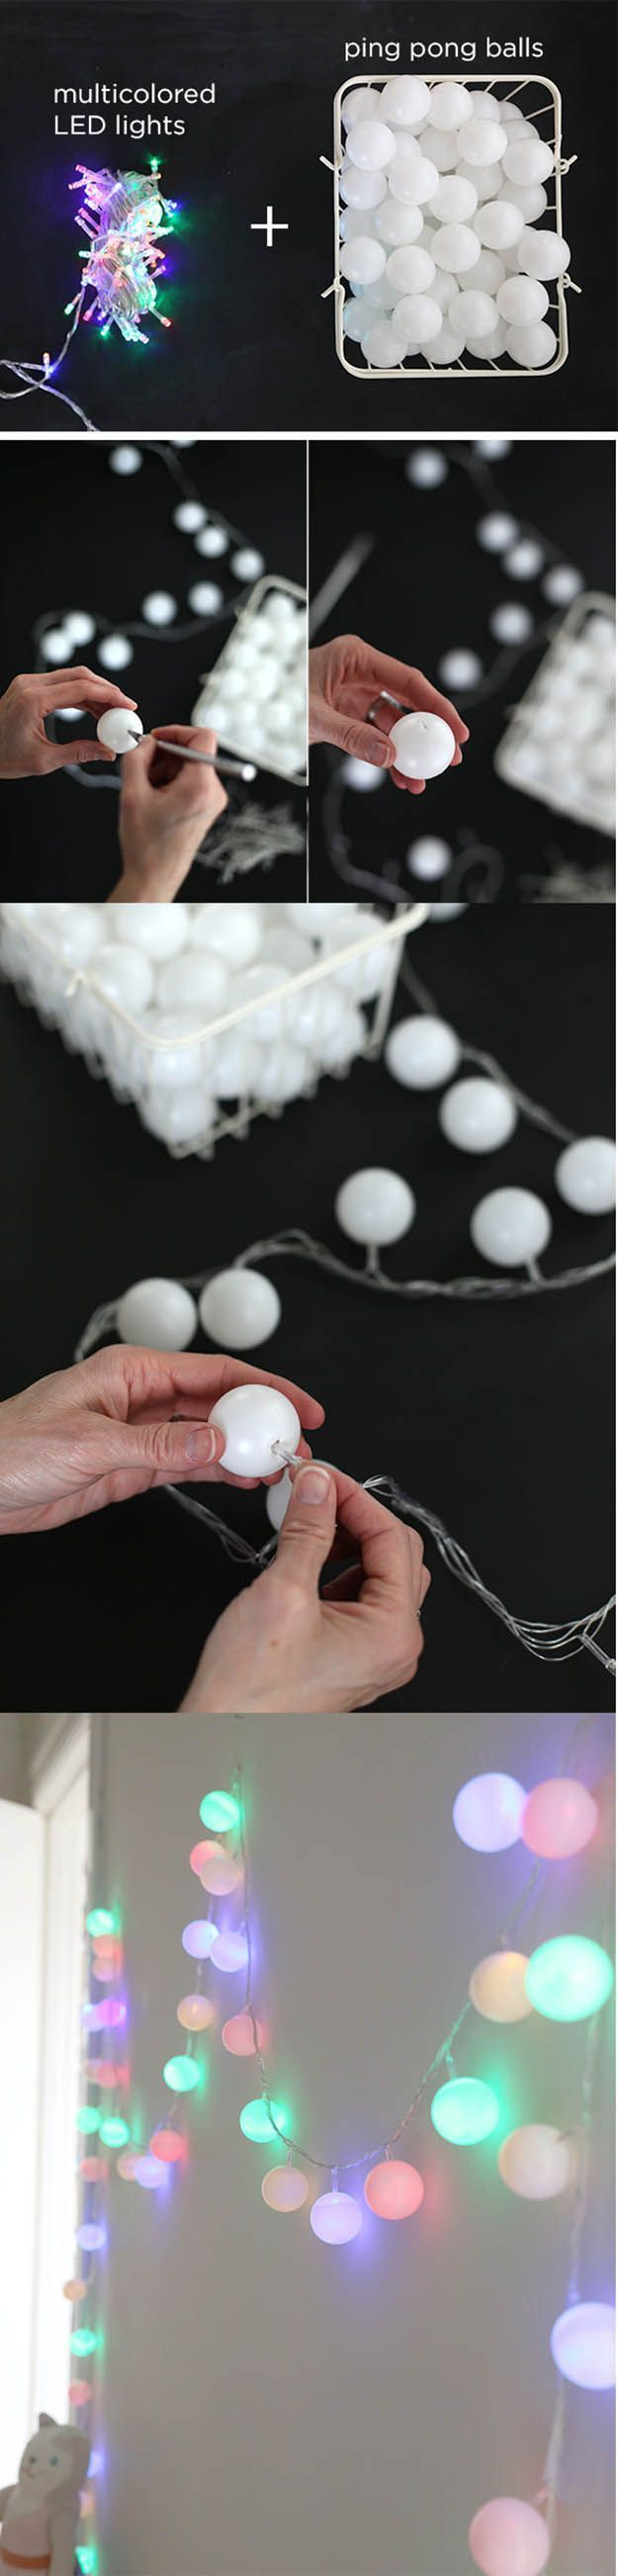 How To Make Cheap Cafe Ping Pong Ball DIY Lighting On A Budget | Easy Ways To Upgrade Your Outdoor Cafe Or Home By DIY Ready http://diyready.com/save-on-easy-diy-crafts/ Call today or stop by for a tour of our facility! Indoor Parking Available! Ideal for Classic Cars, Motorcycles, ATV's & Jet Skies 505-275-2825